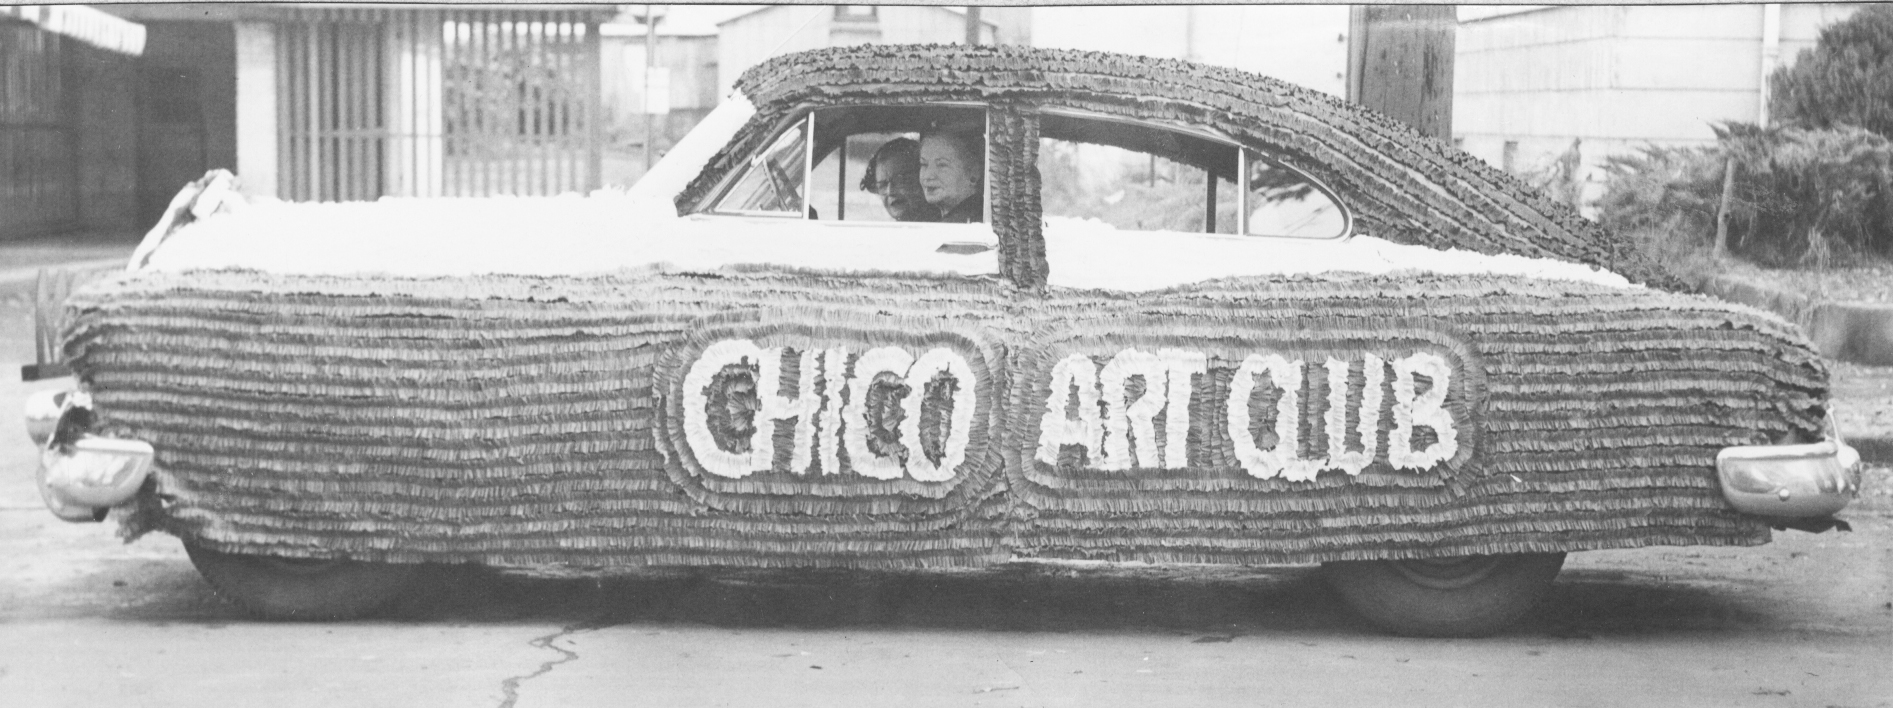 cwc car in parade